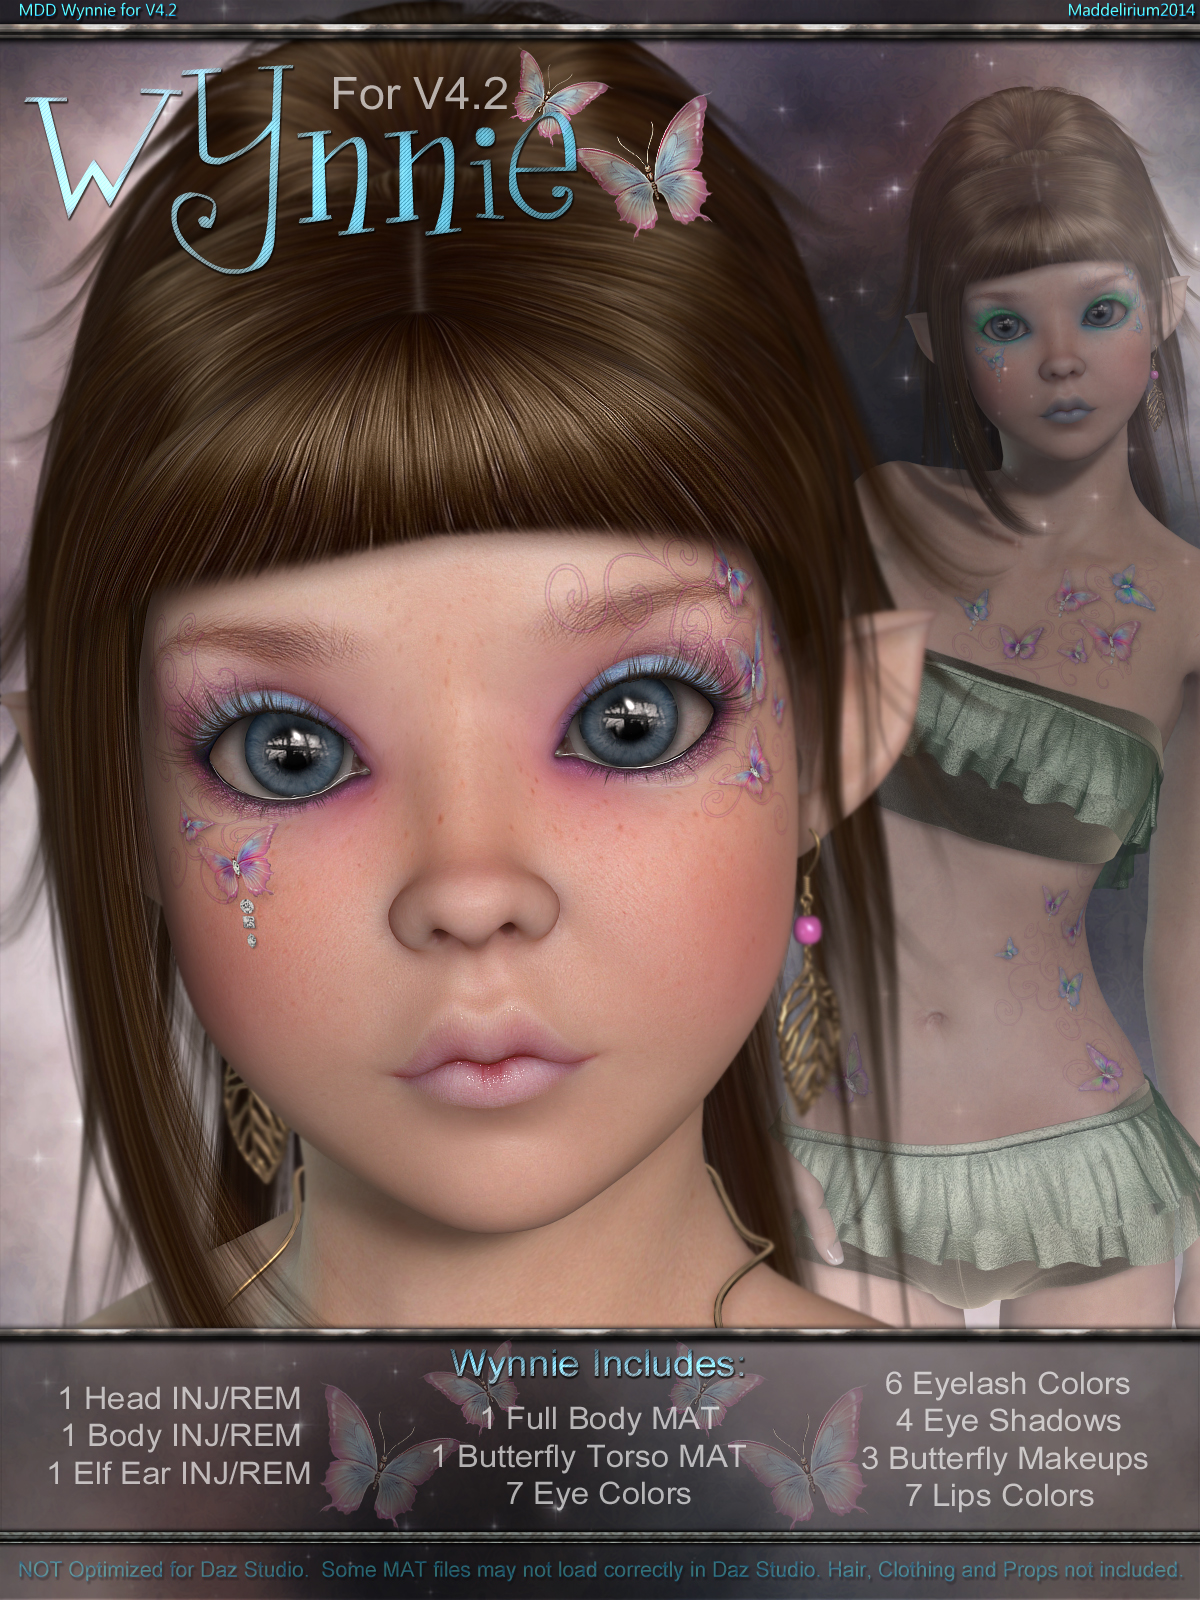 MDD Wynnie for V4.2